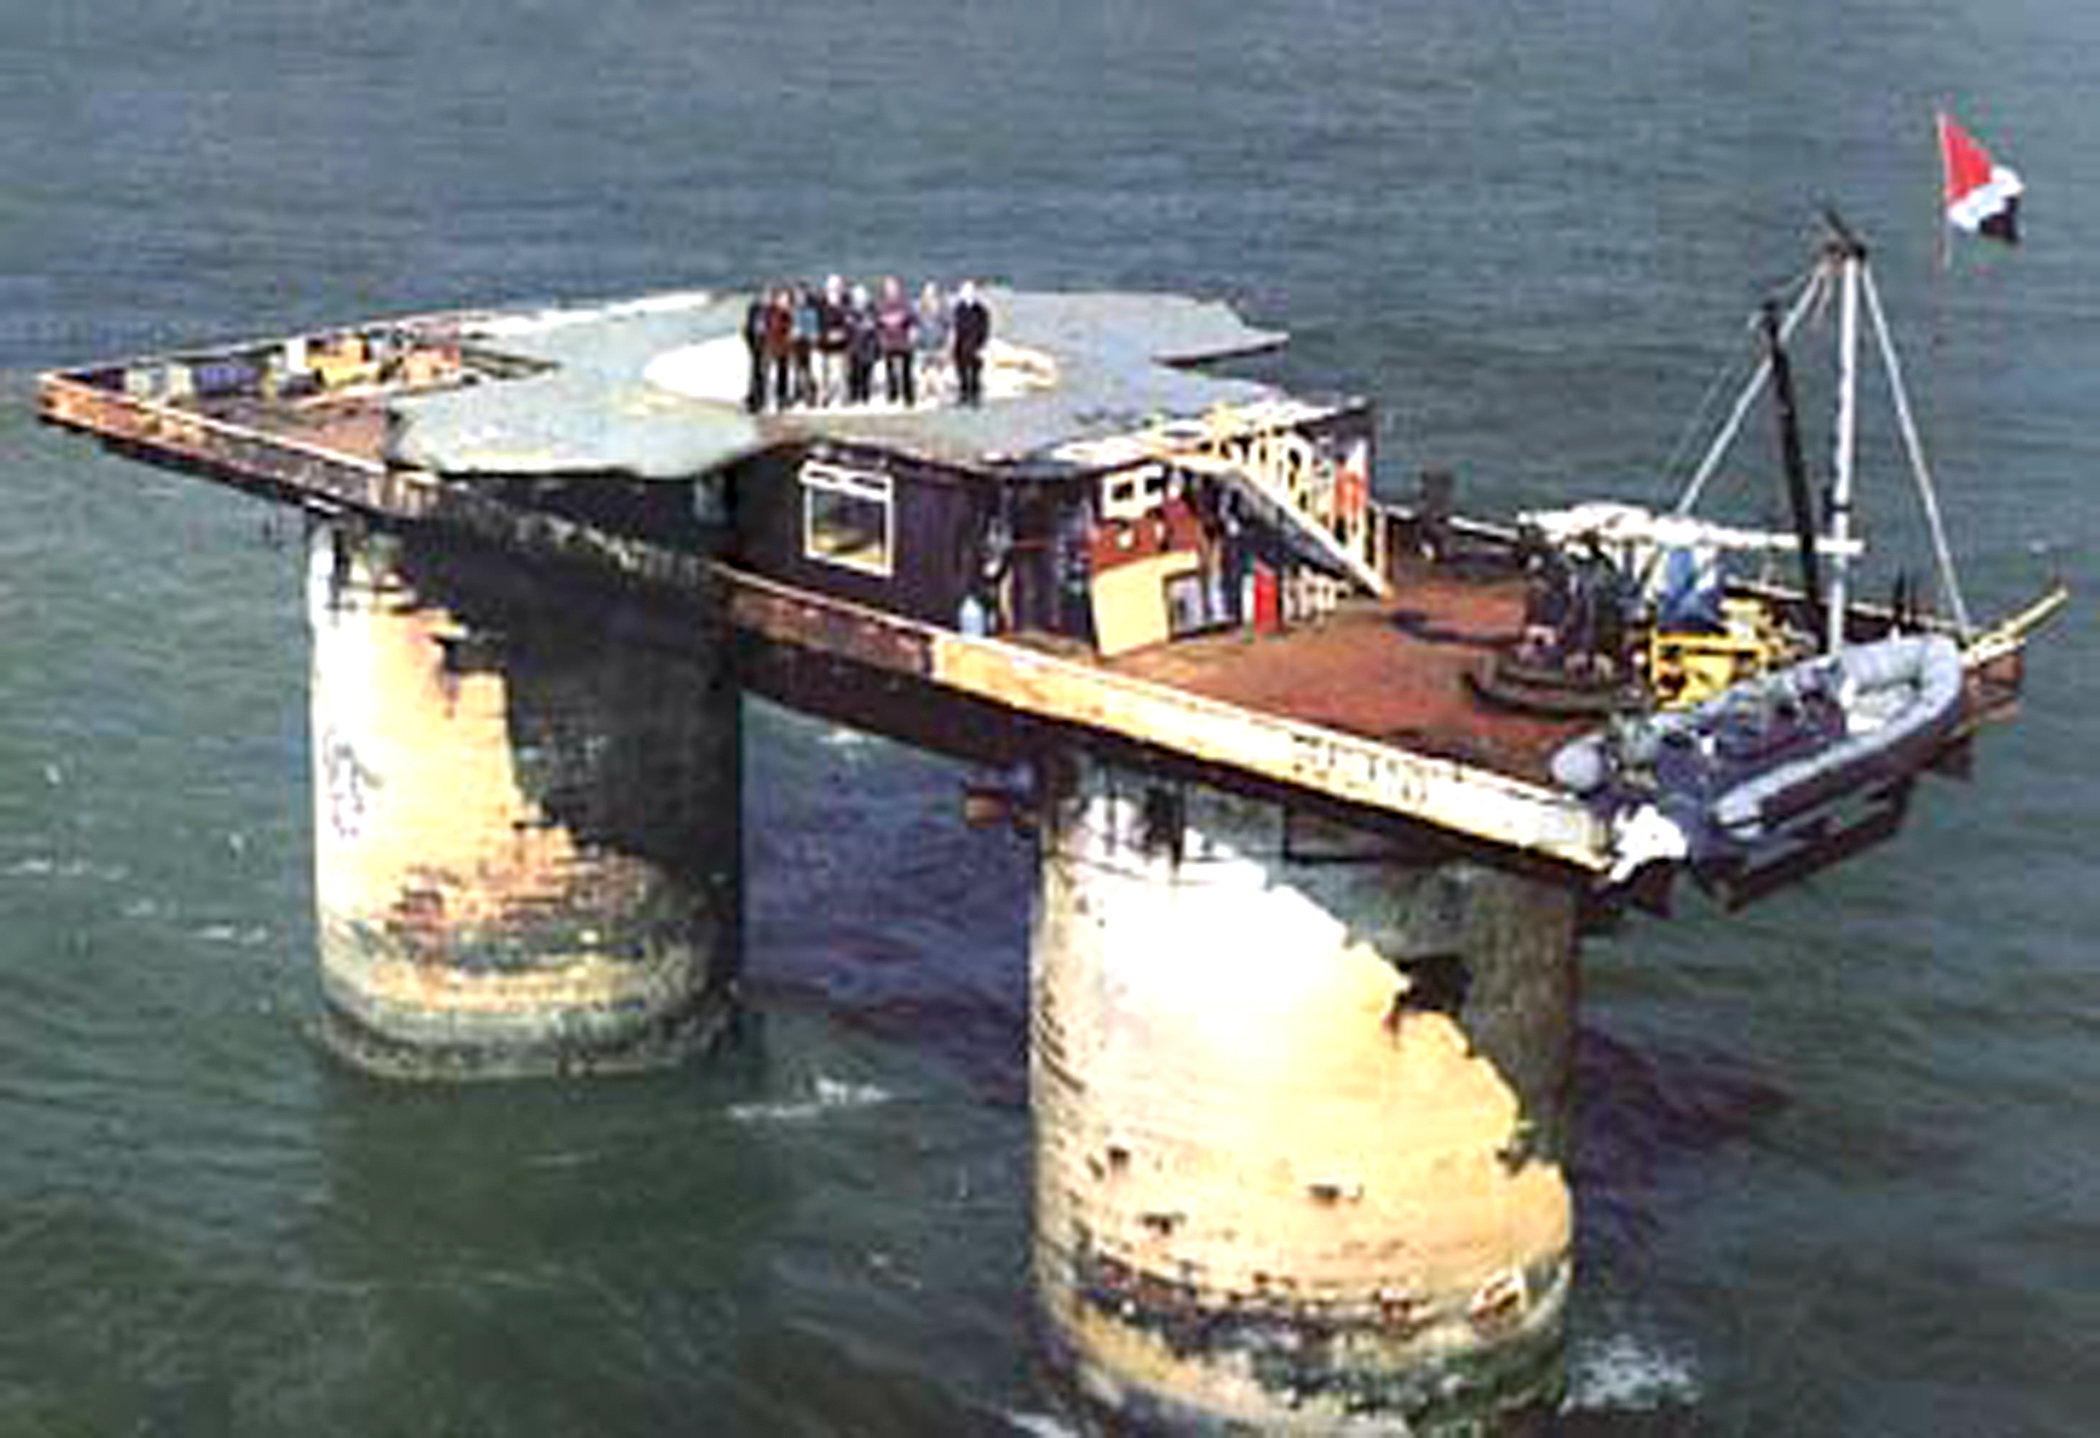 Sealand is celebrating its 50th anniversary